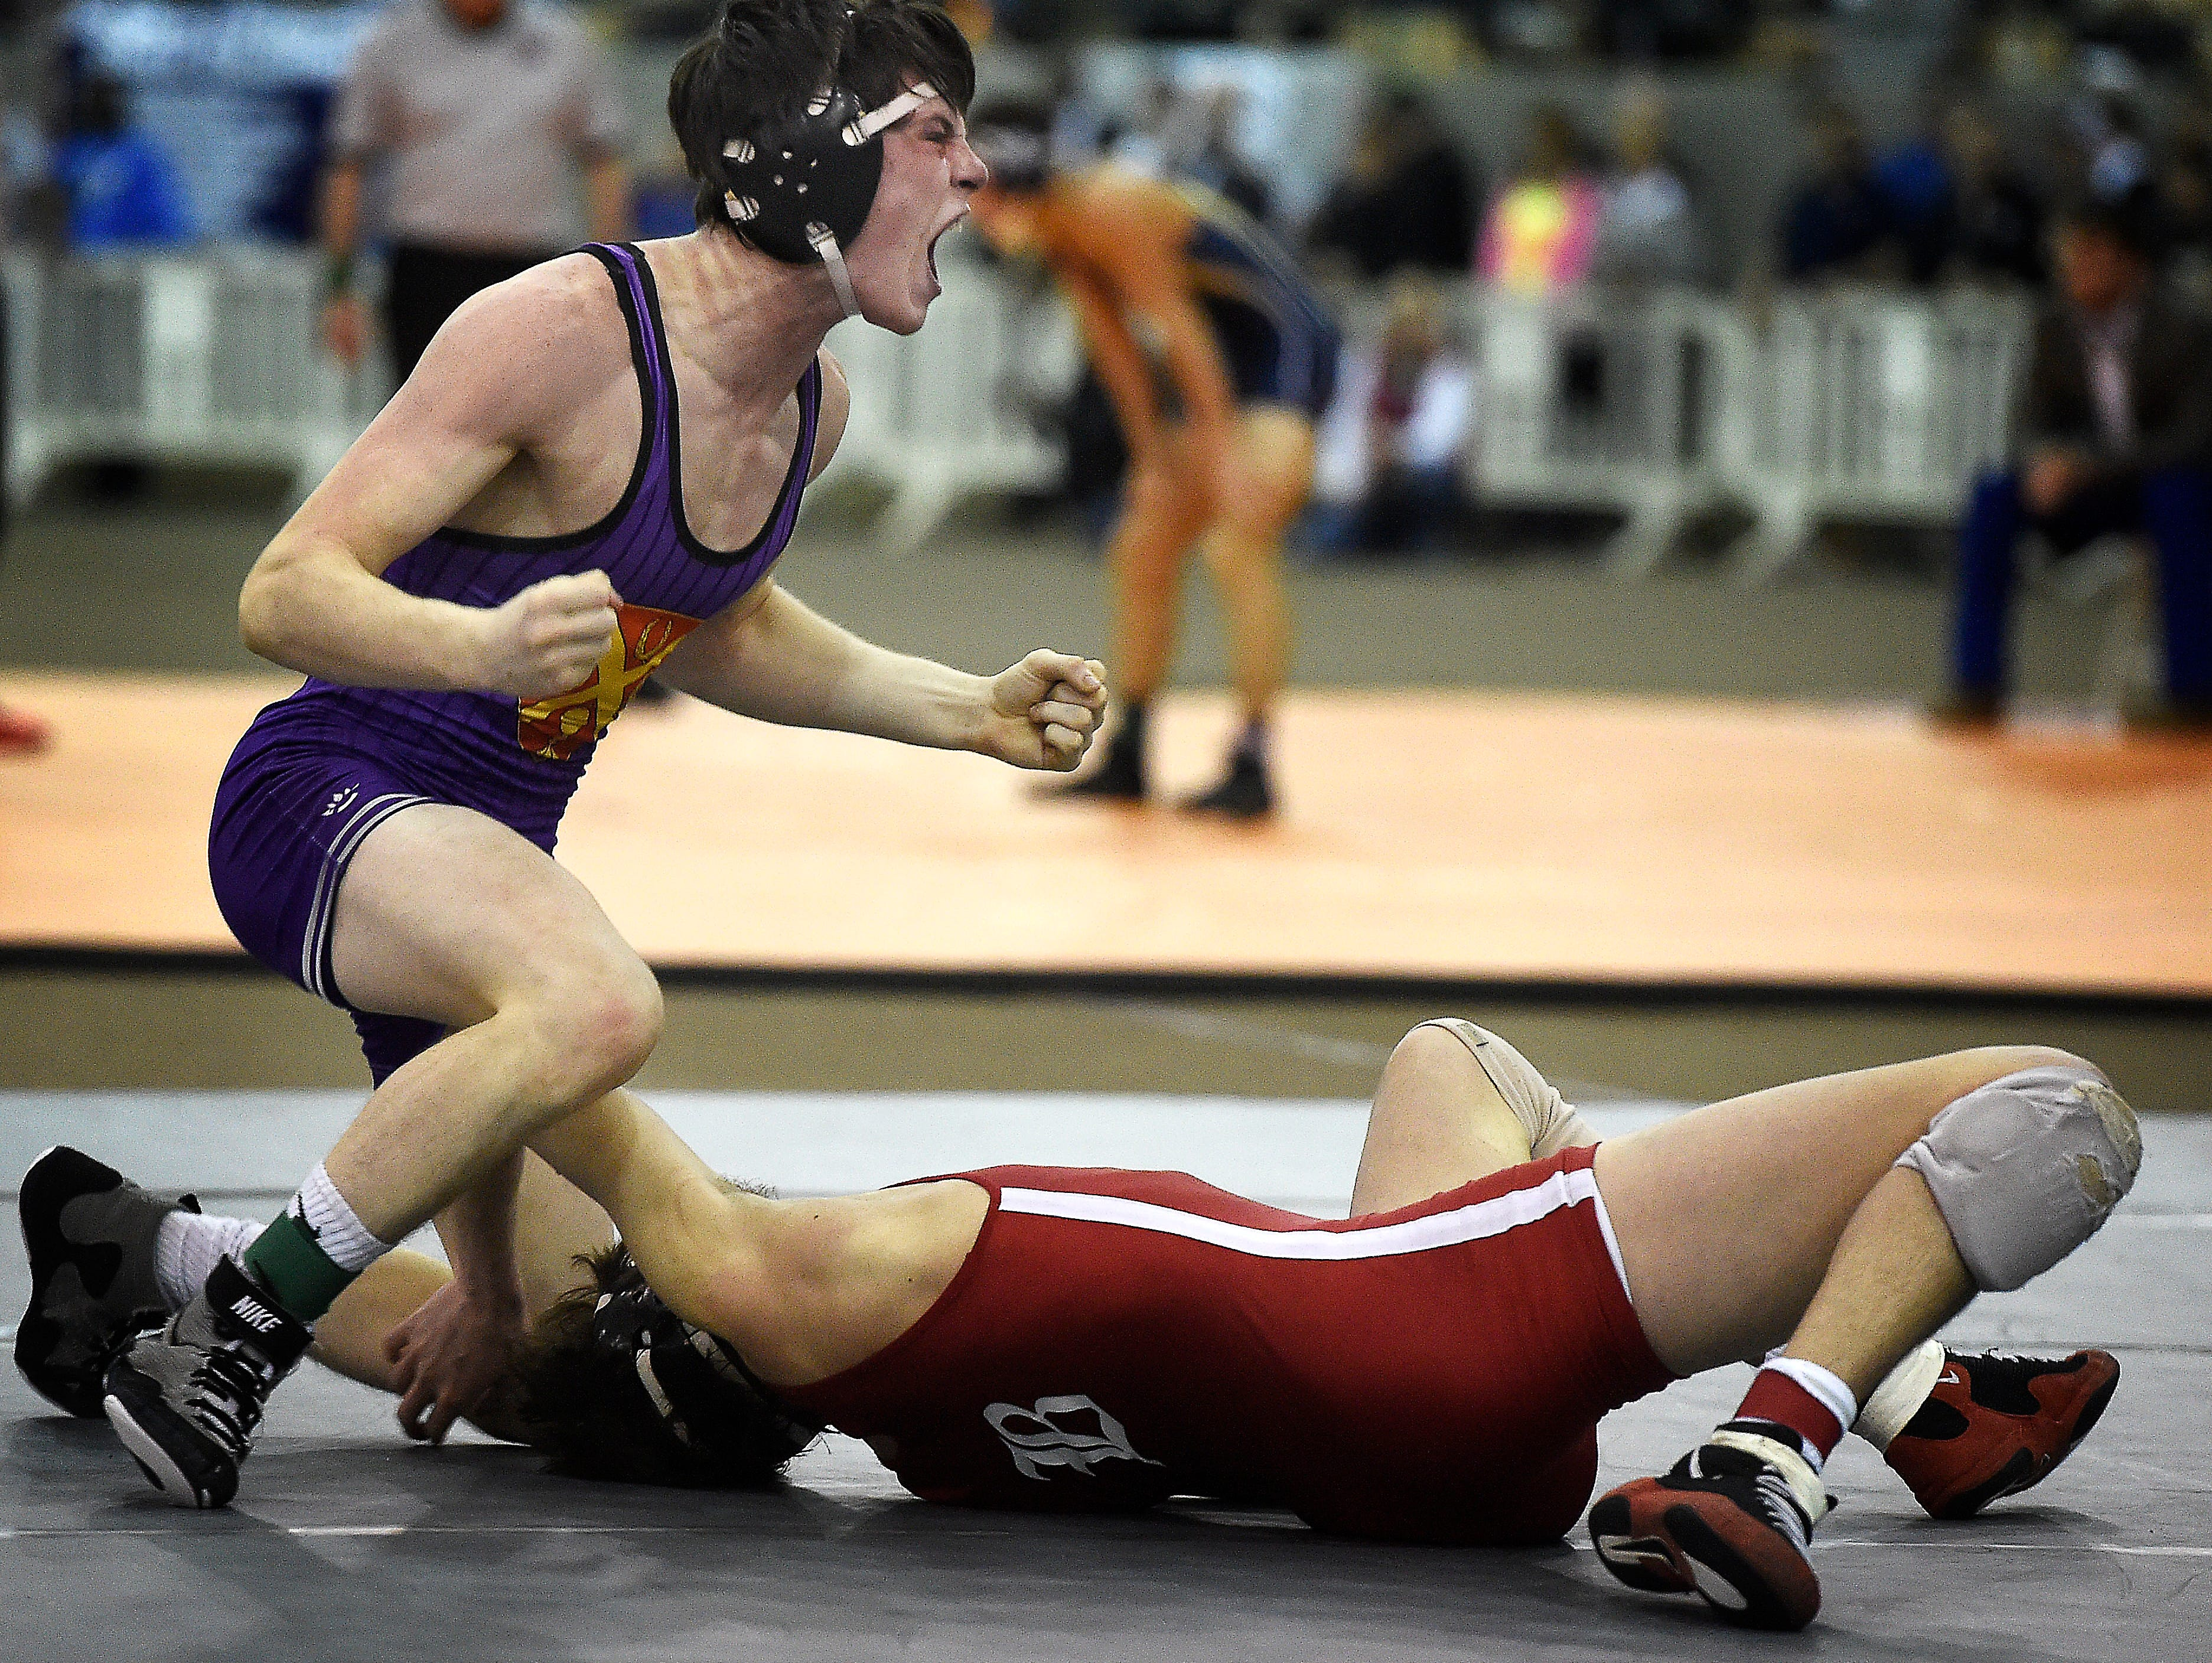 Kirby Simpson (Ryan) celebrates his win over Jack Reynolds (Baylor) in the 132 pounds class at the TSSAA state wrestling championships Saturday Feb. 20, 2016, in Franklin, Tenn.